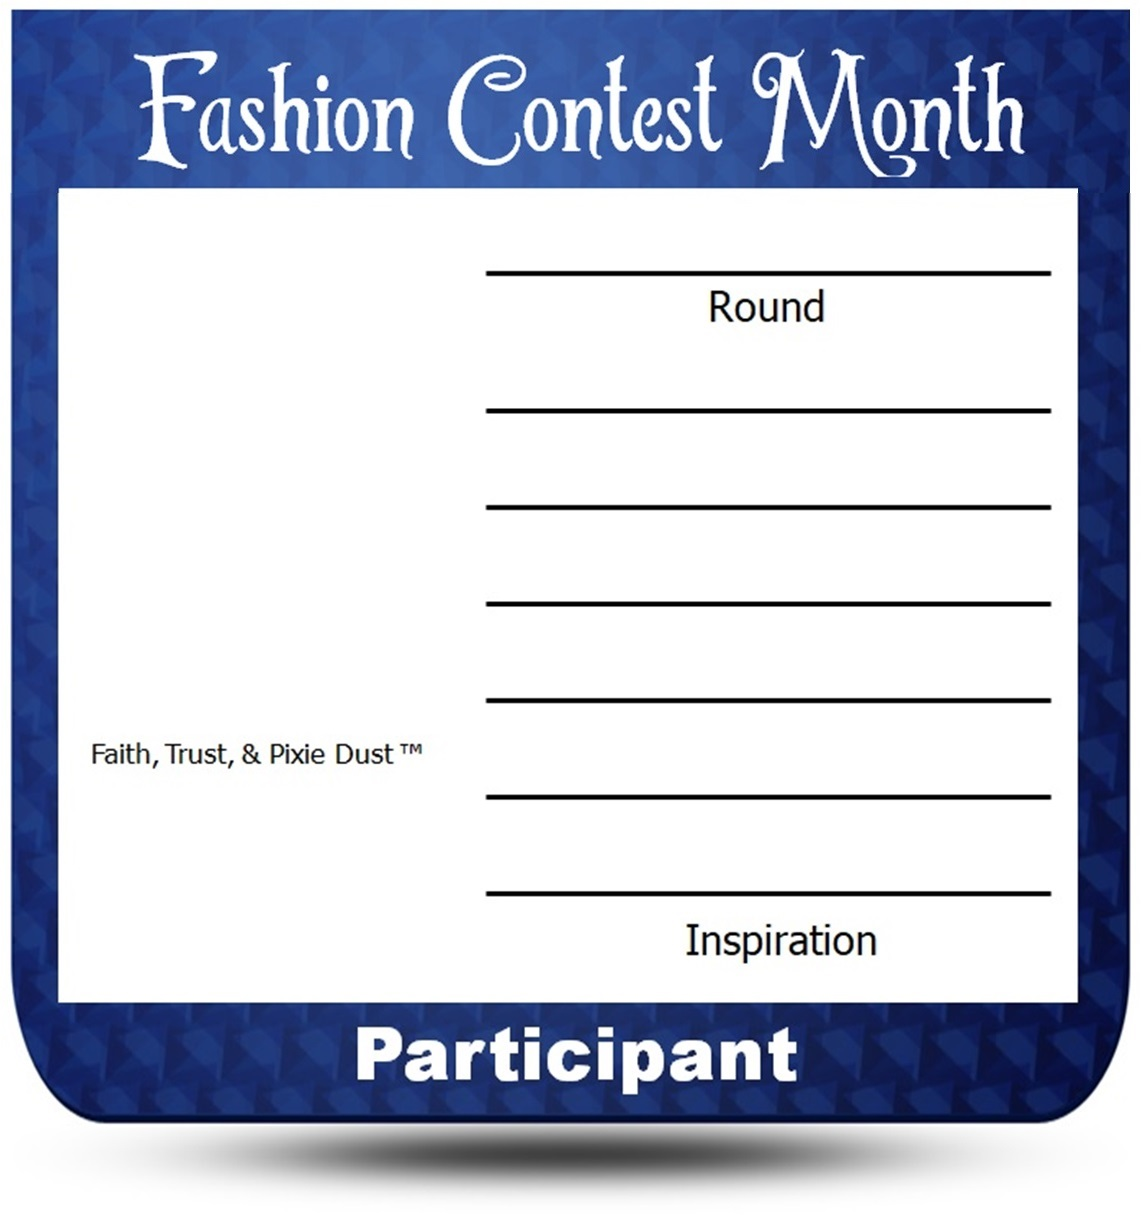 Participant Entry Template R1-3.jpg